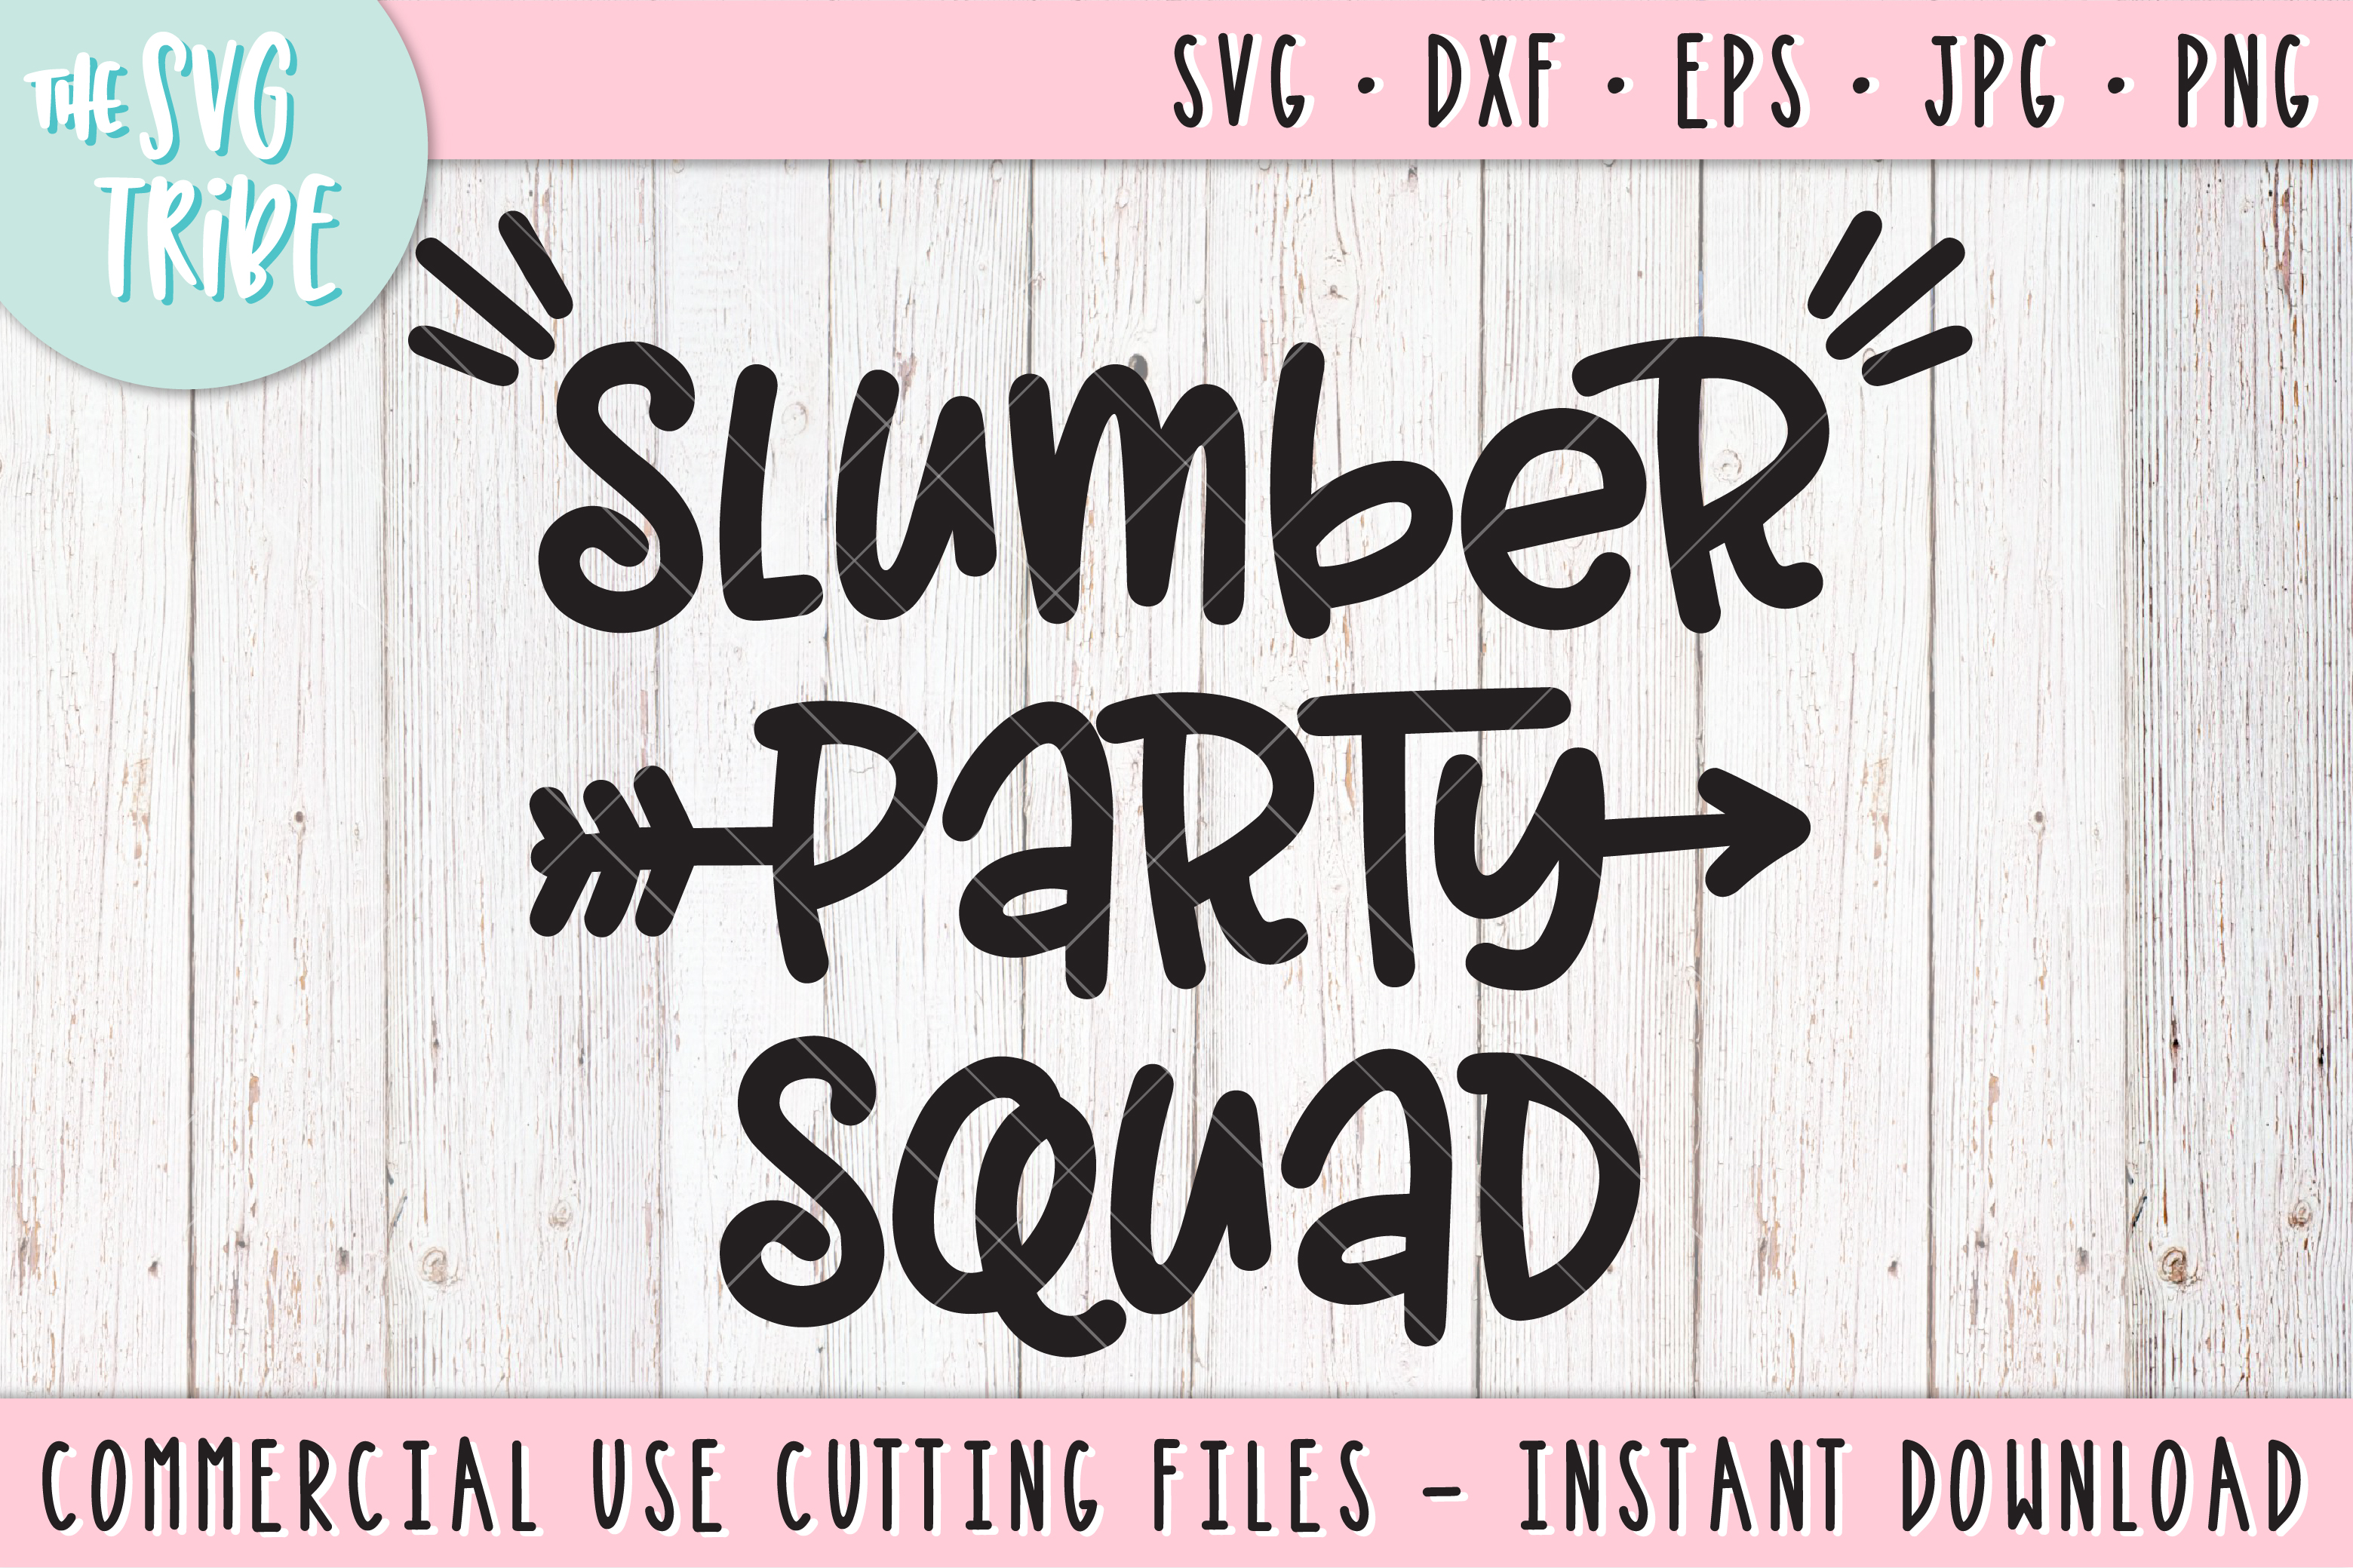 Slumber Party Squad, SVG DXF PNG EPS JPG Cutting Files example image 1